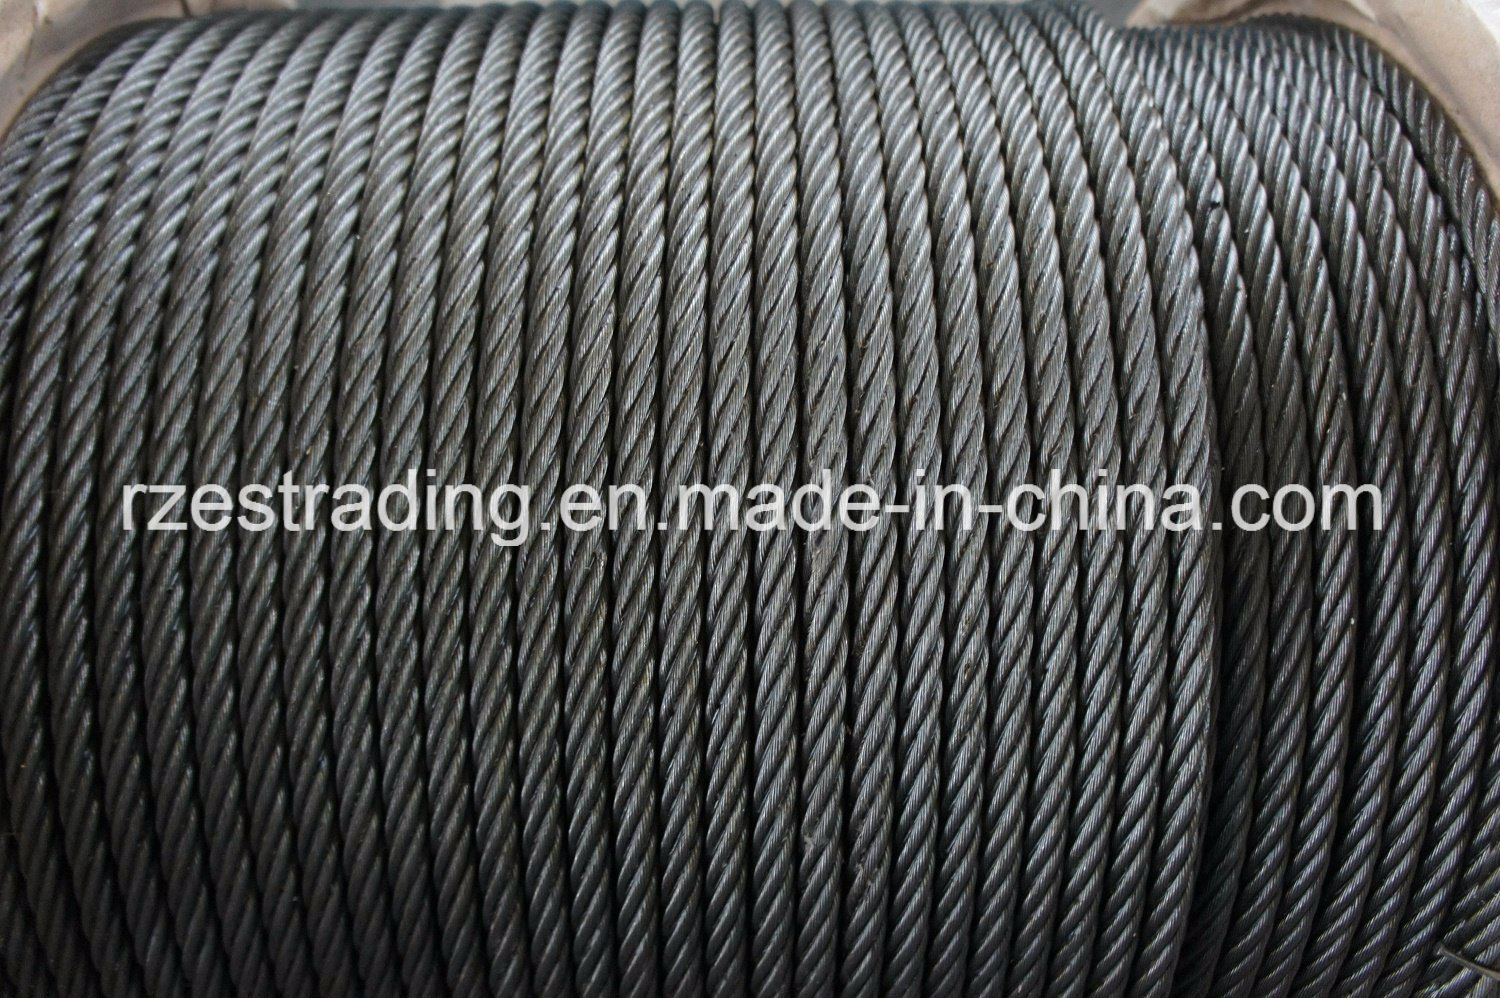 China Galvanized Steel Wire Rope 6 X 19+ 1 FC - China Wire ...